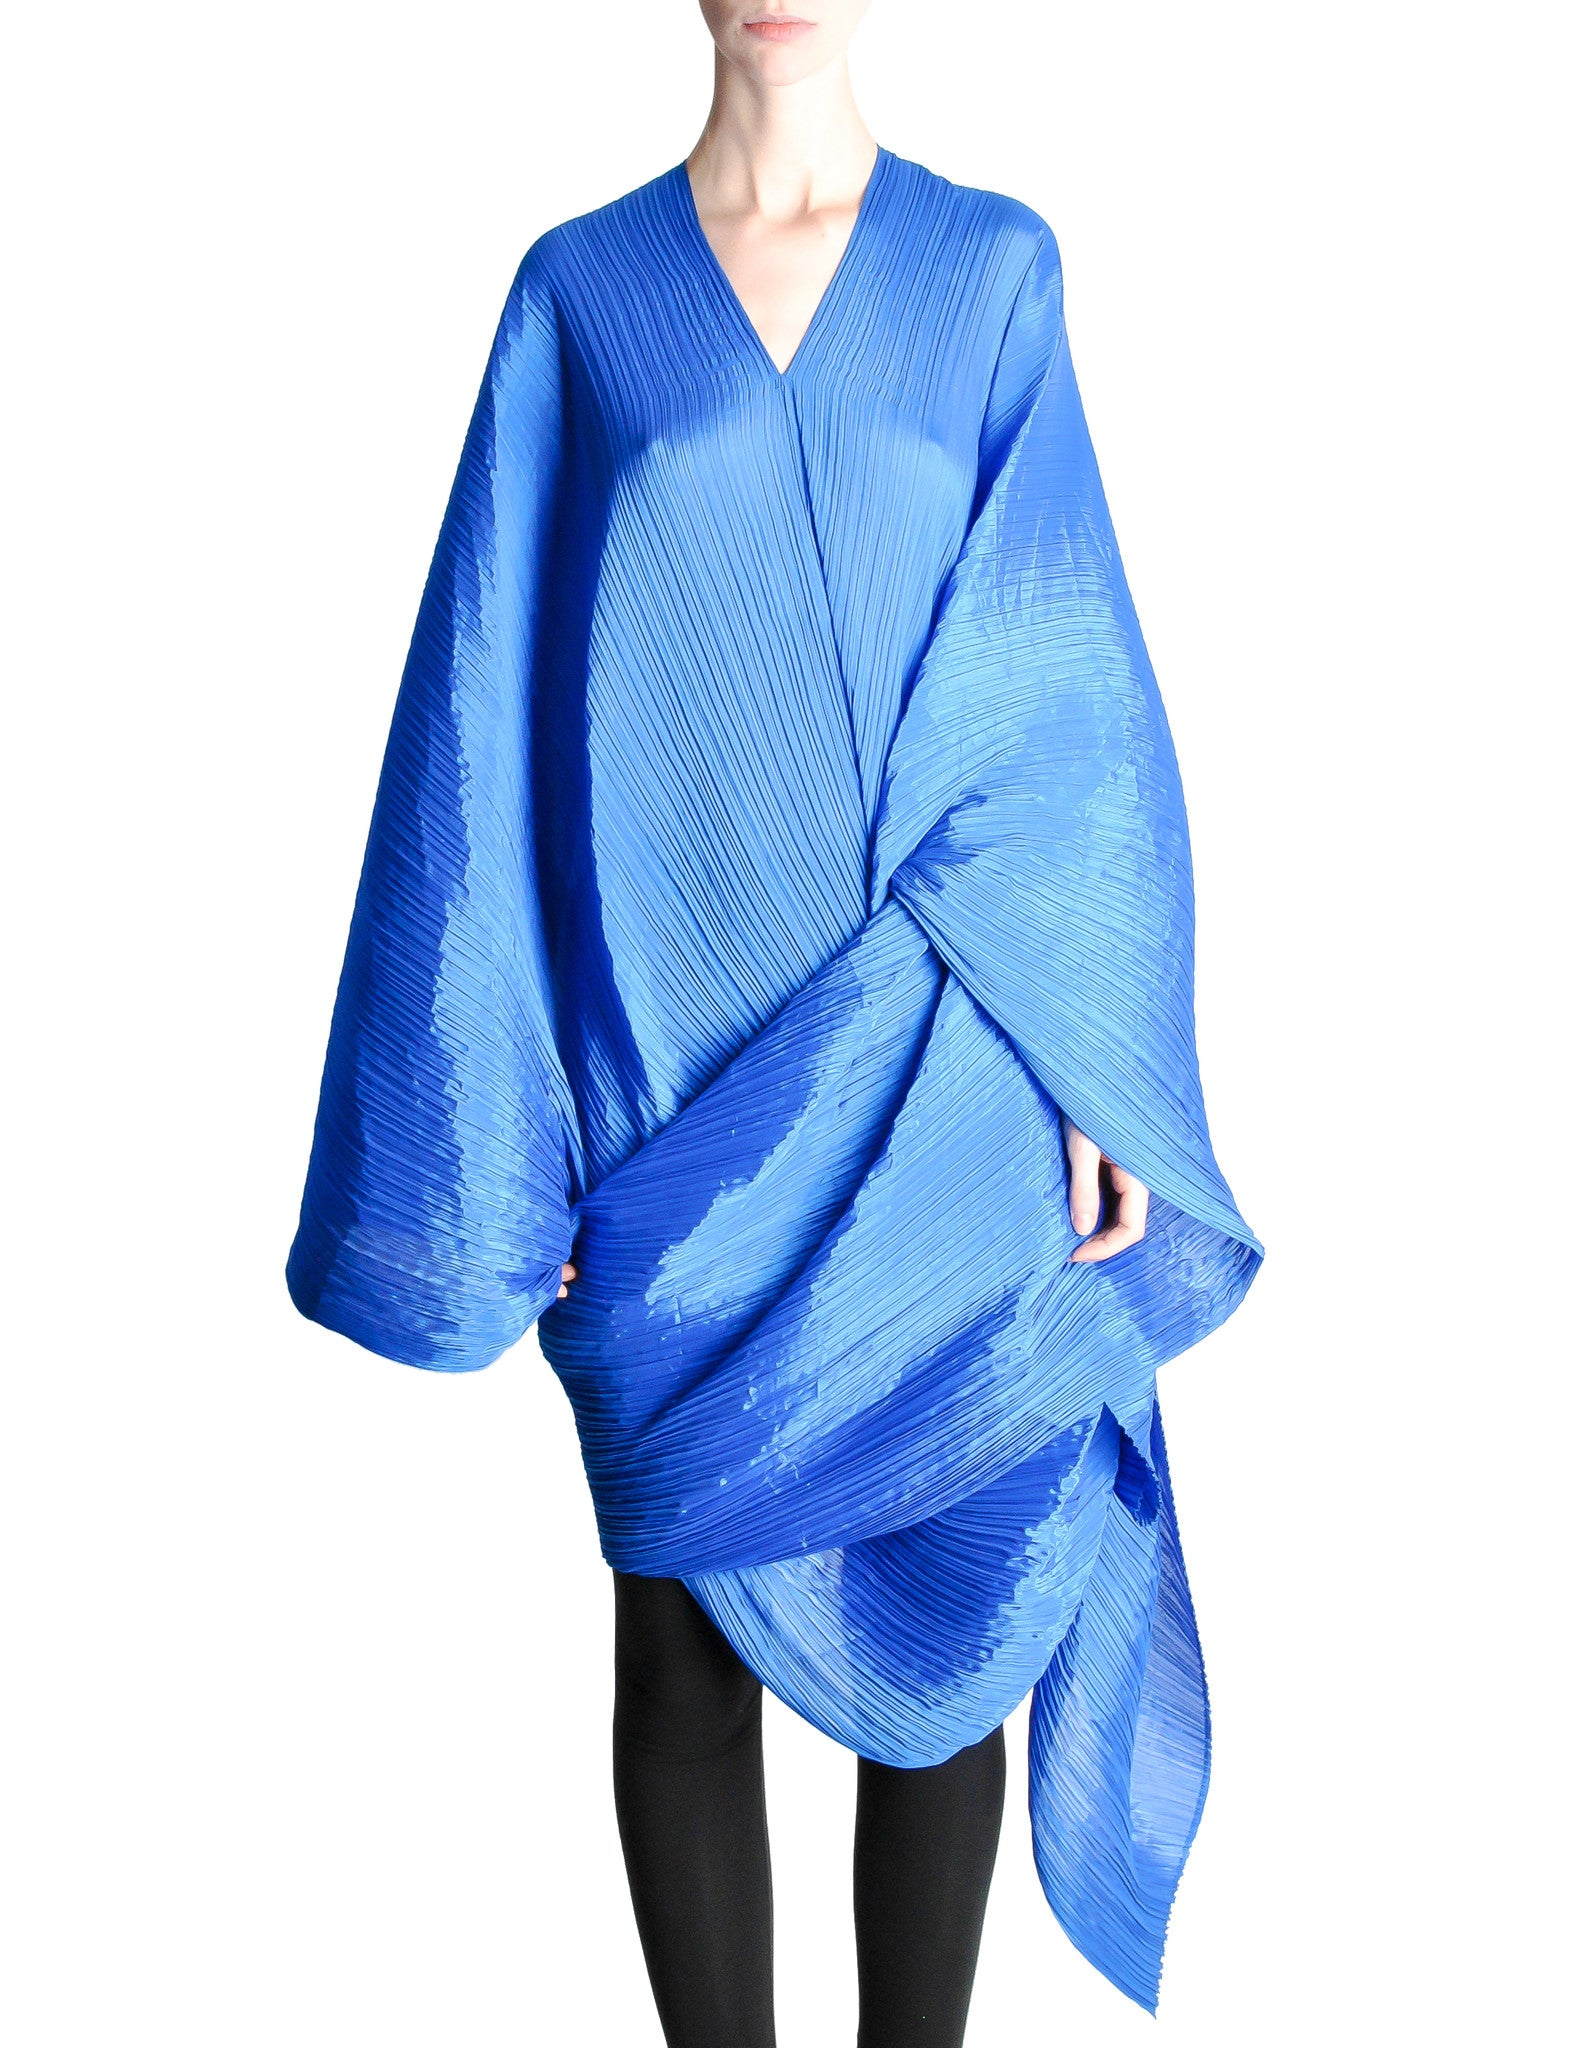 Issey Miyake Pleats Please Vintage Blue Pleated Multi-Functional Wrap Cape - Amarcord Vintage Fashion  - 1